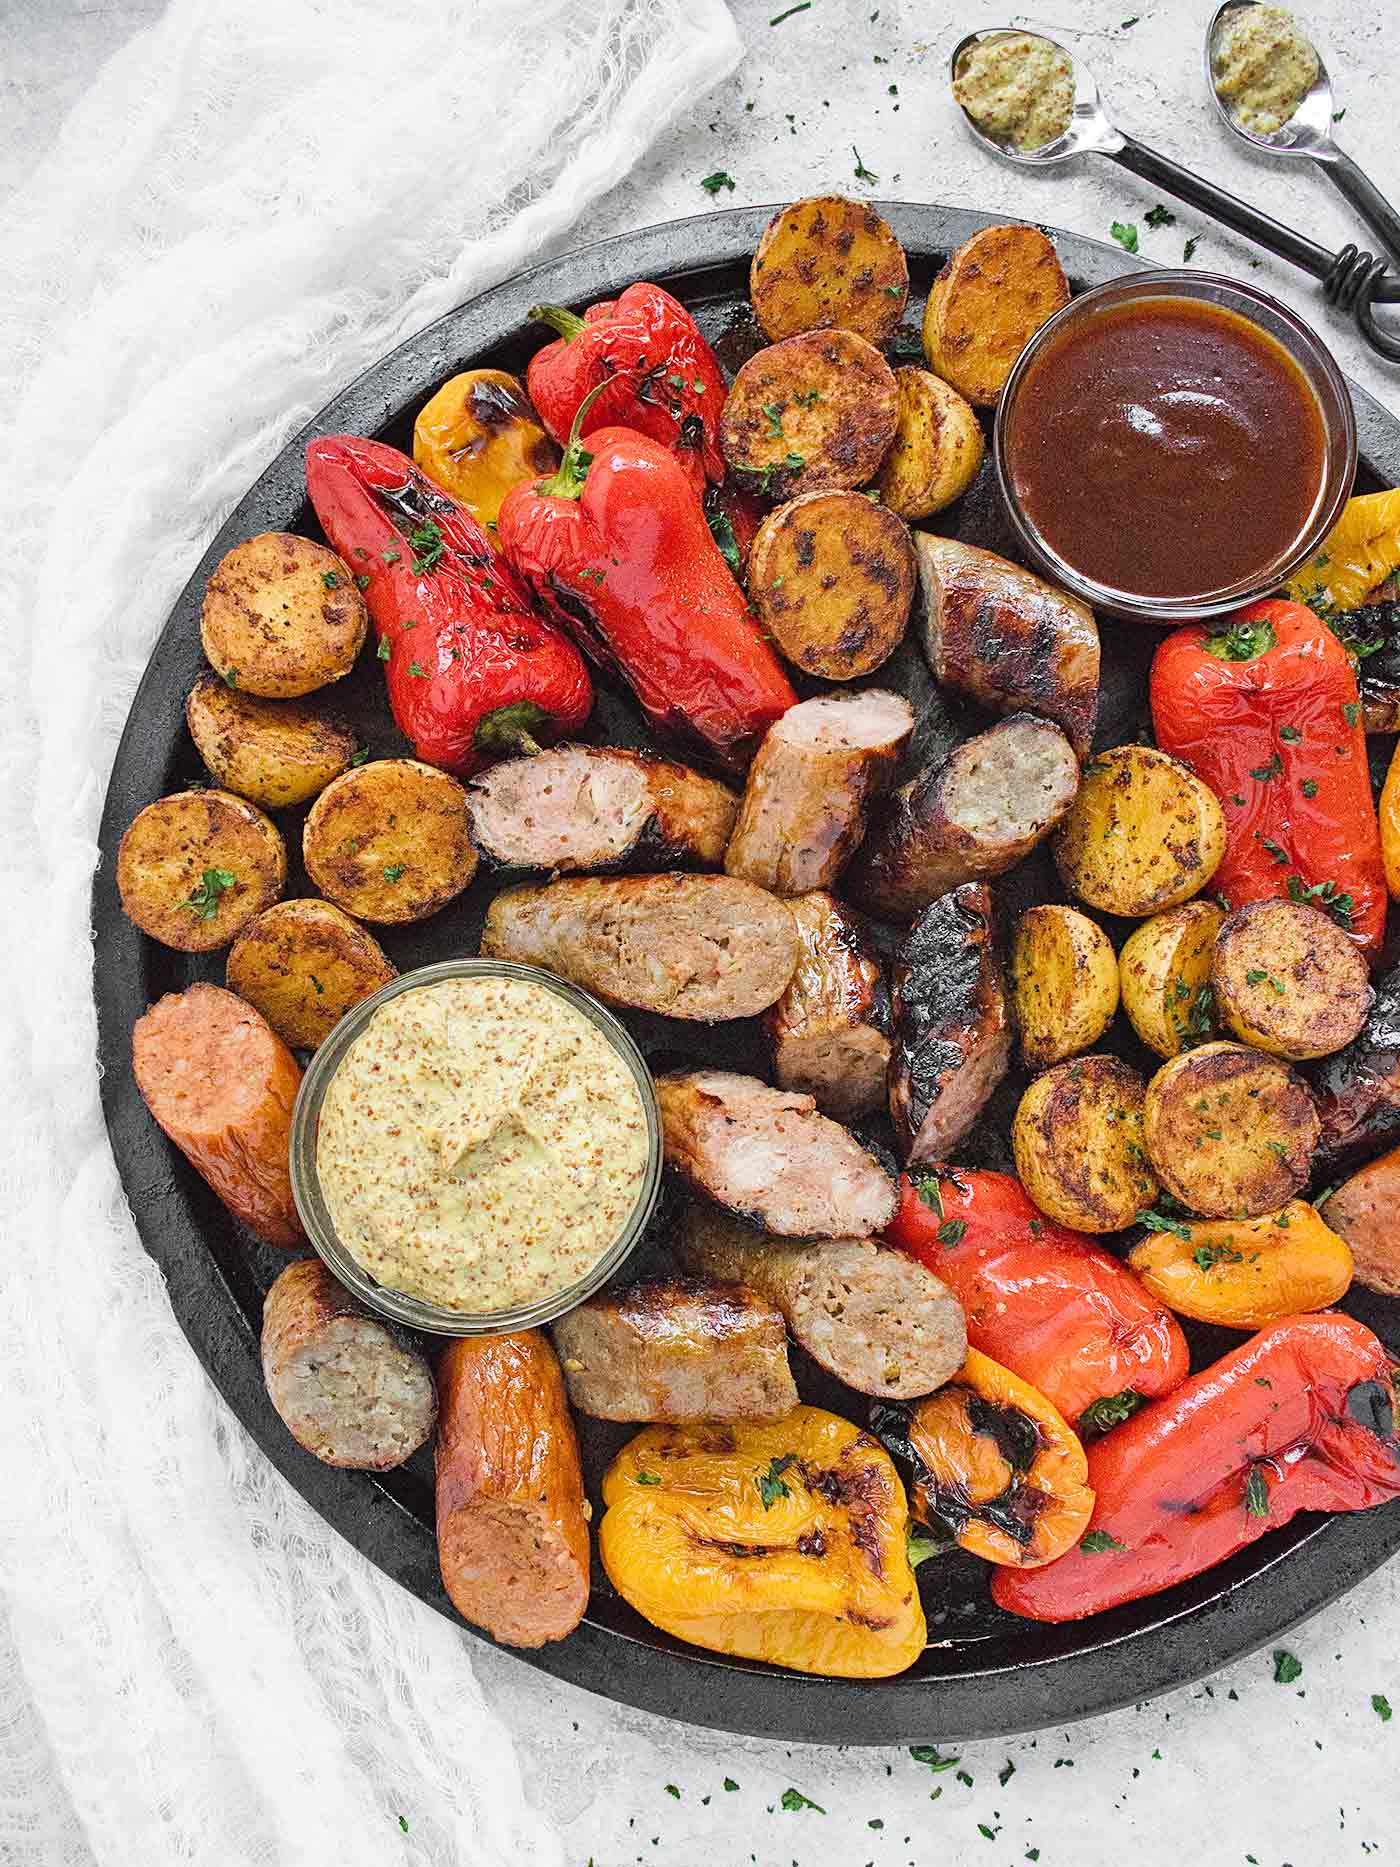 Overhead shot of platter of grilled sausages, peppers, potatoes with dipping sauces